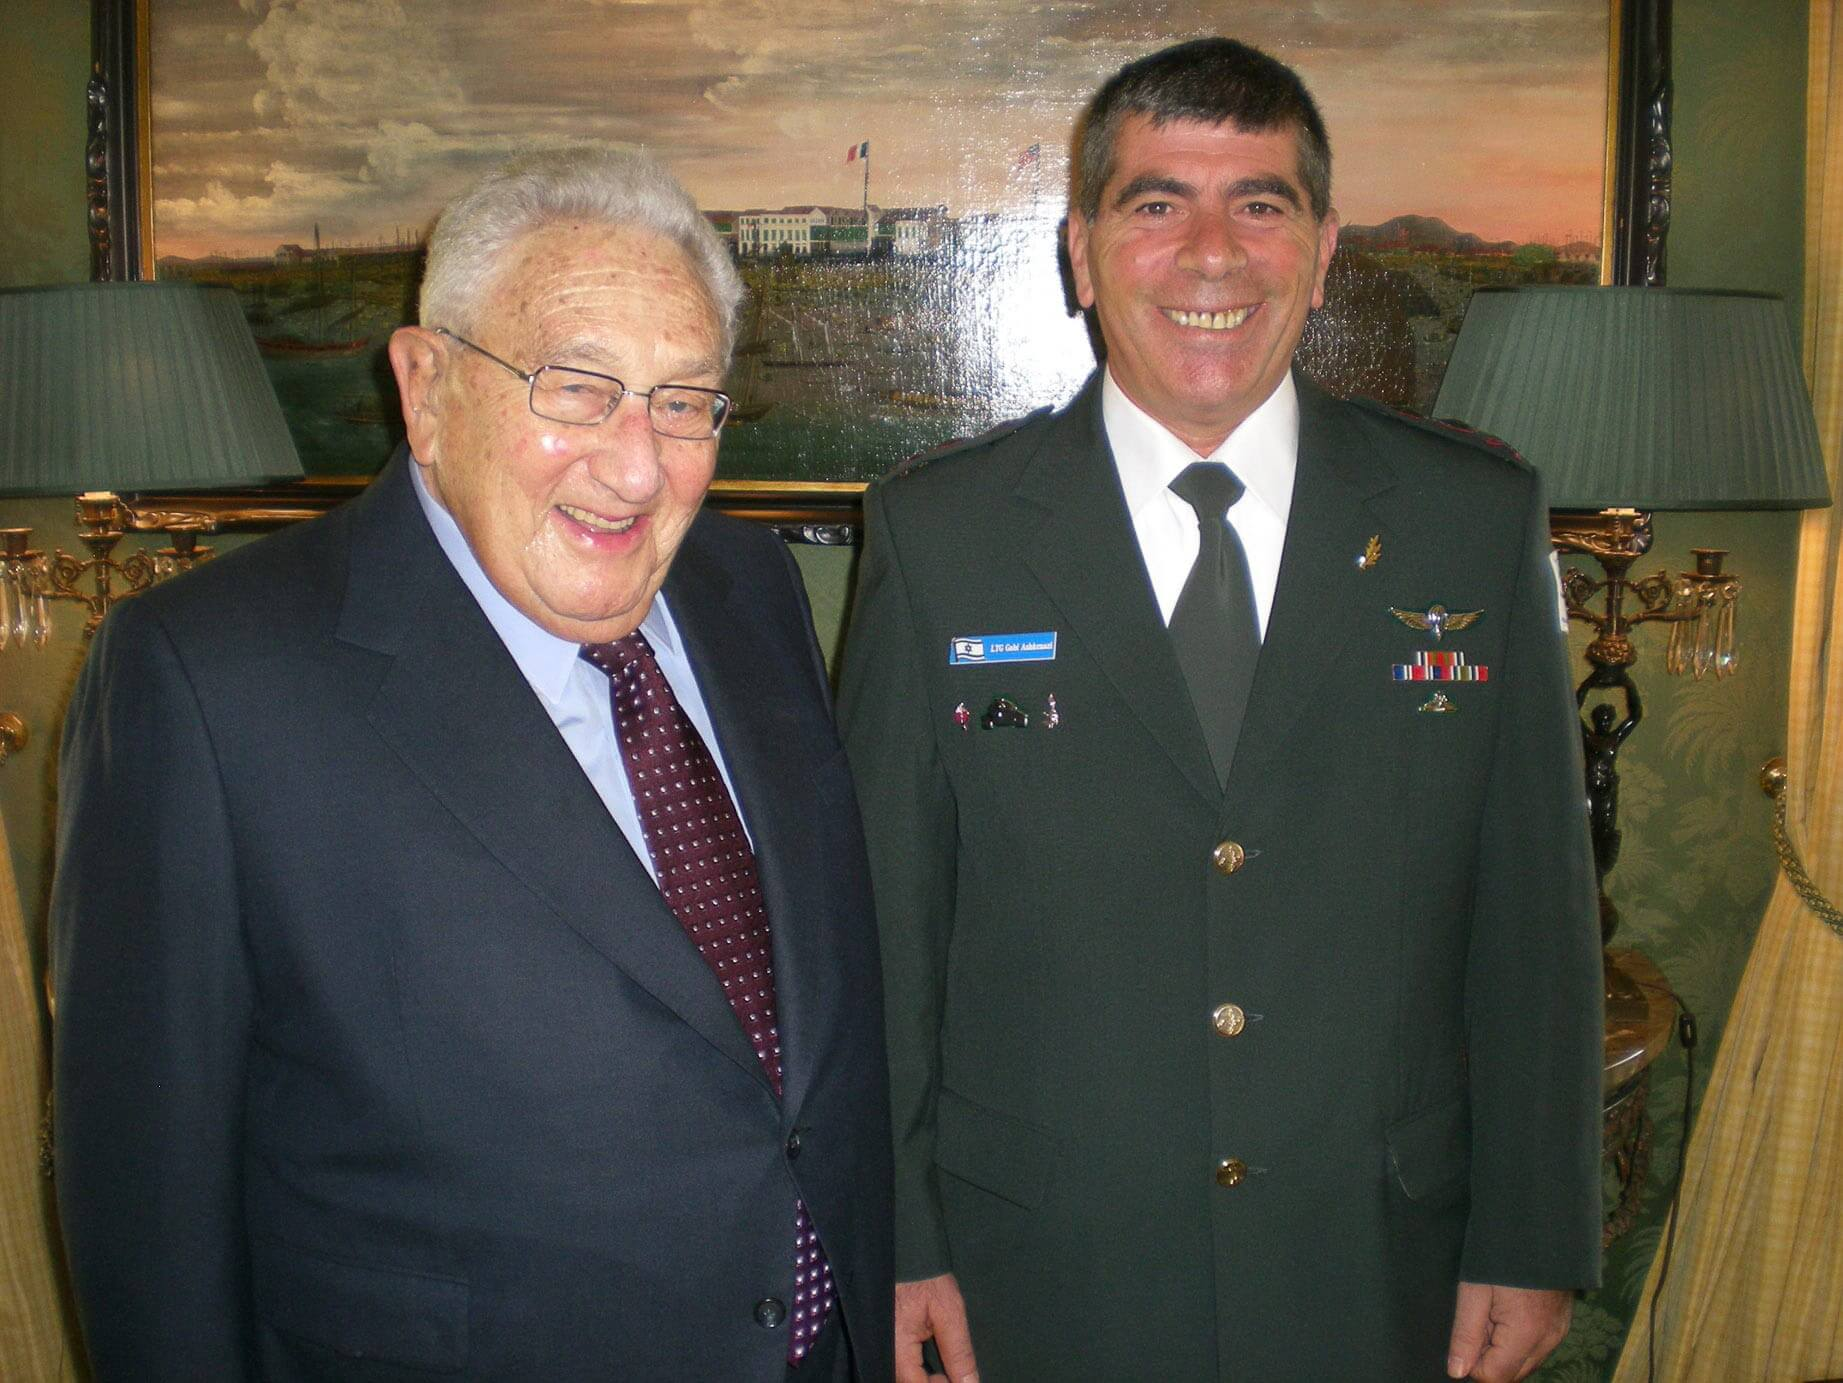 IDF Chief of the General Staff. Lt. Gen. Gabi Ashkenazi, met yesterday (Friday) with Dr. Henry Kissinger for a breakfast at his New York home. Dr. Kissinger and Lt. Gen. Ashkenazi shared their opinions and assessments regarding the situation in the Middle East.